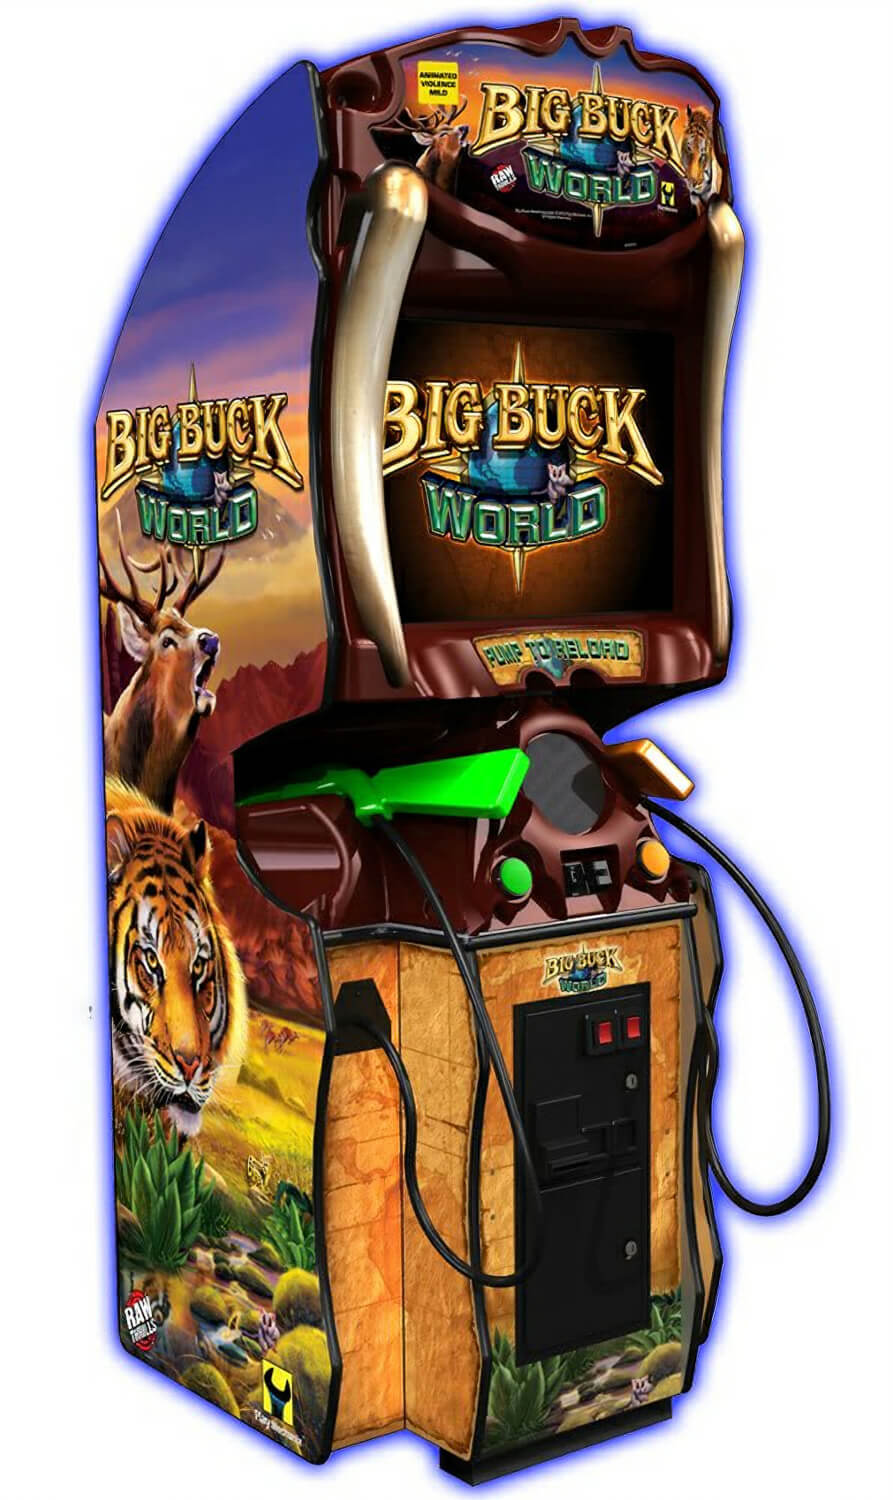 Raw Thrills Big Buck World Arcade Machine Liberty Games